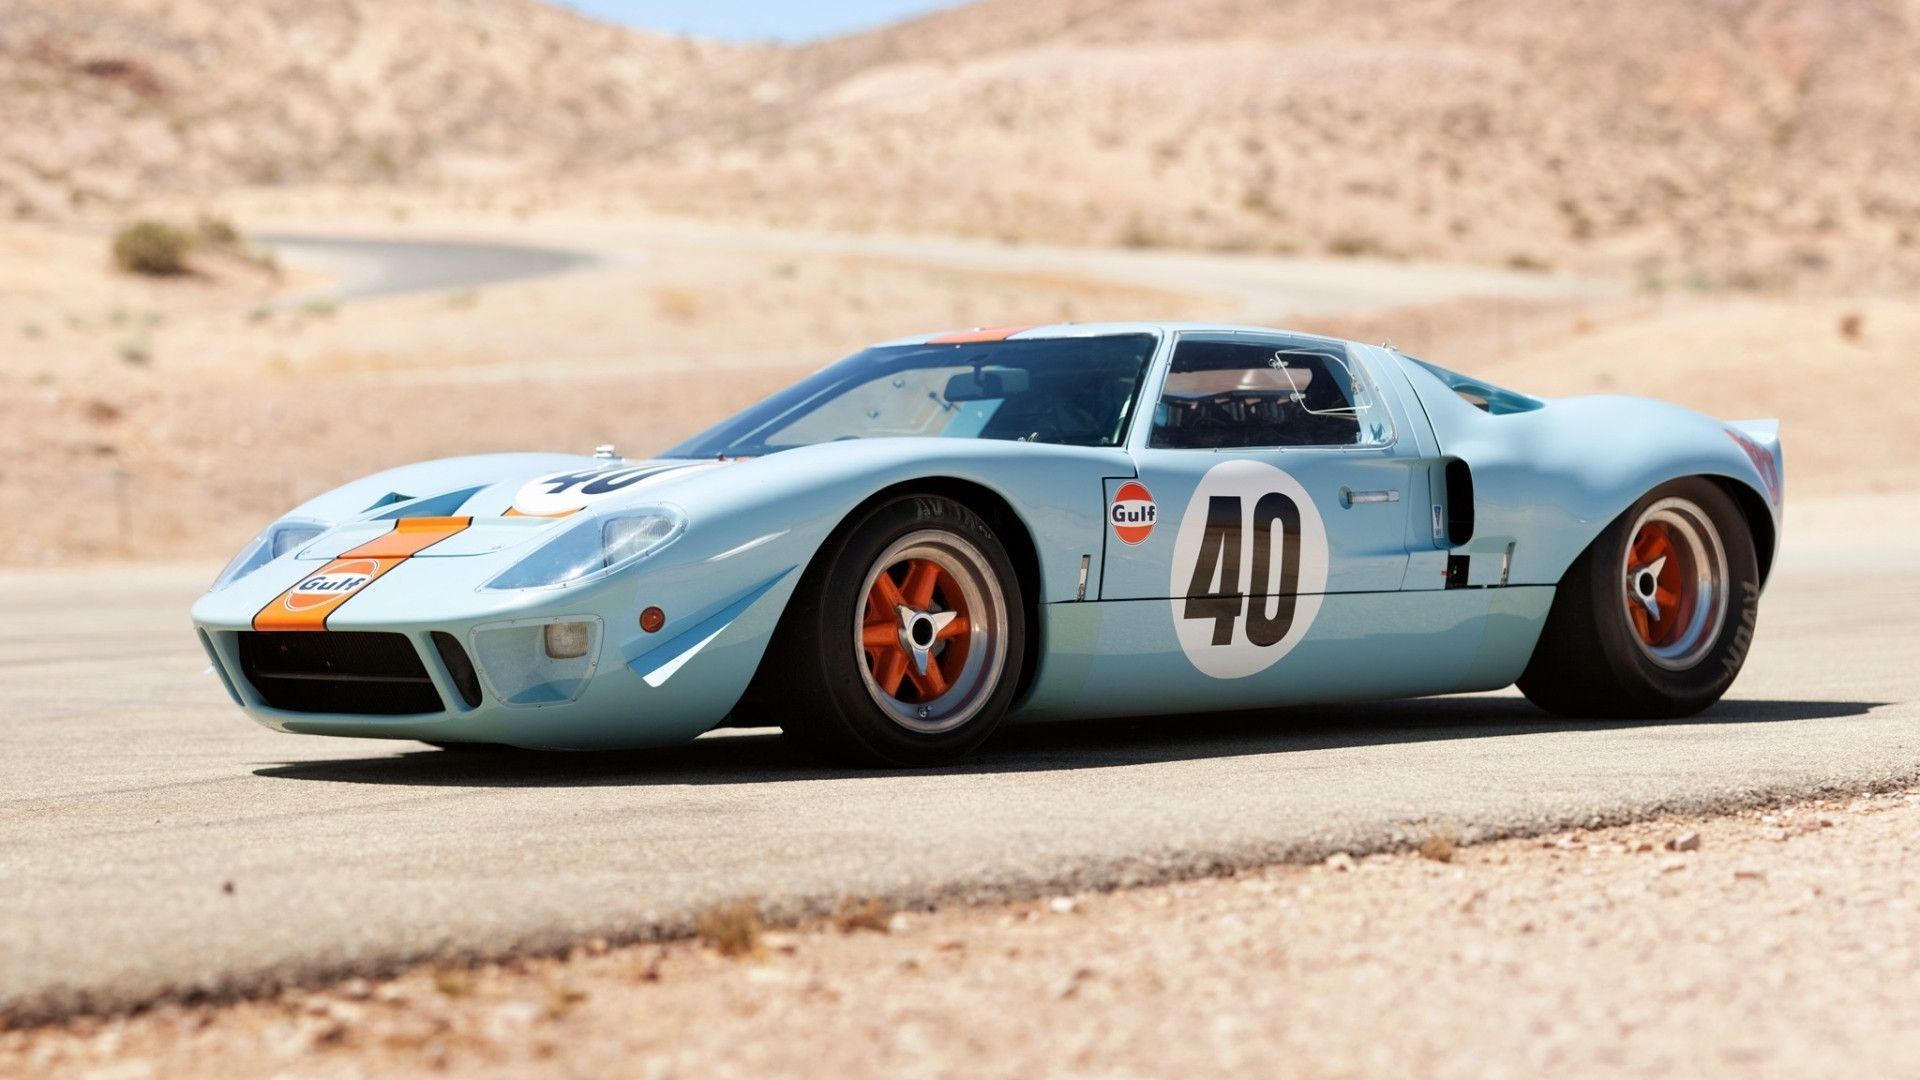 1968 Ford Gt40 Gulf Mirage Lightweight Racing Car Con Imagenes